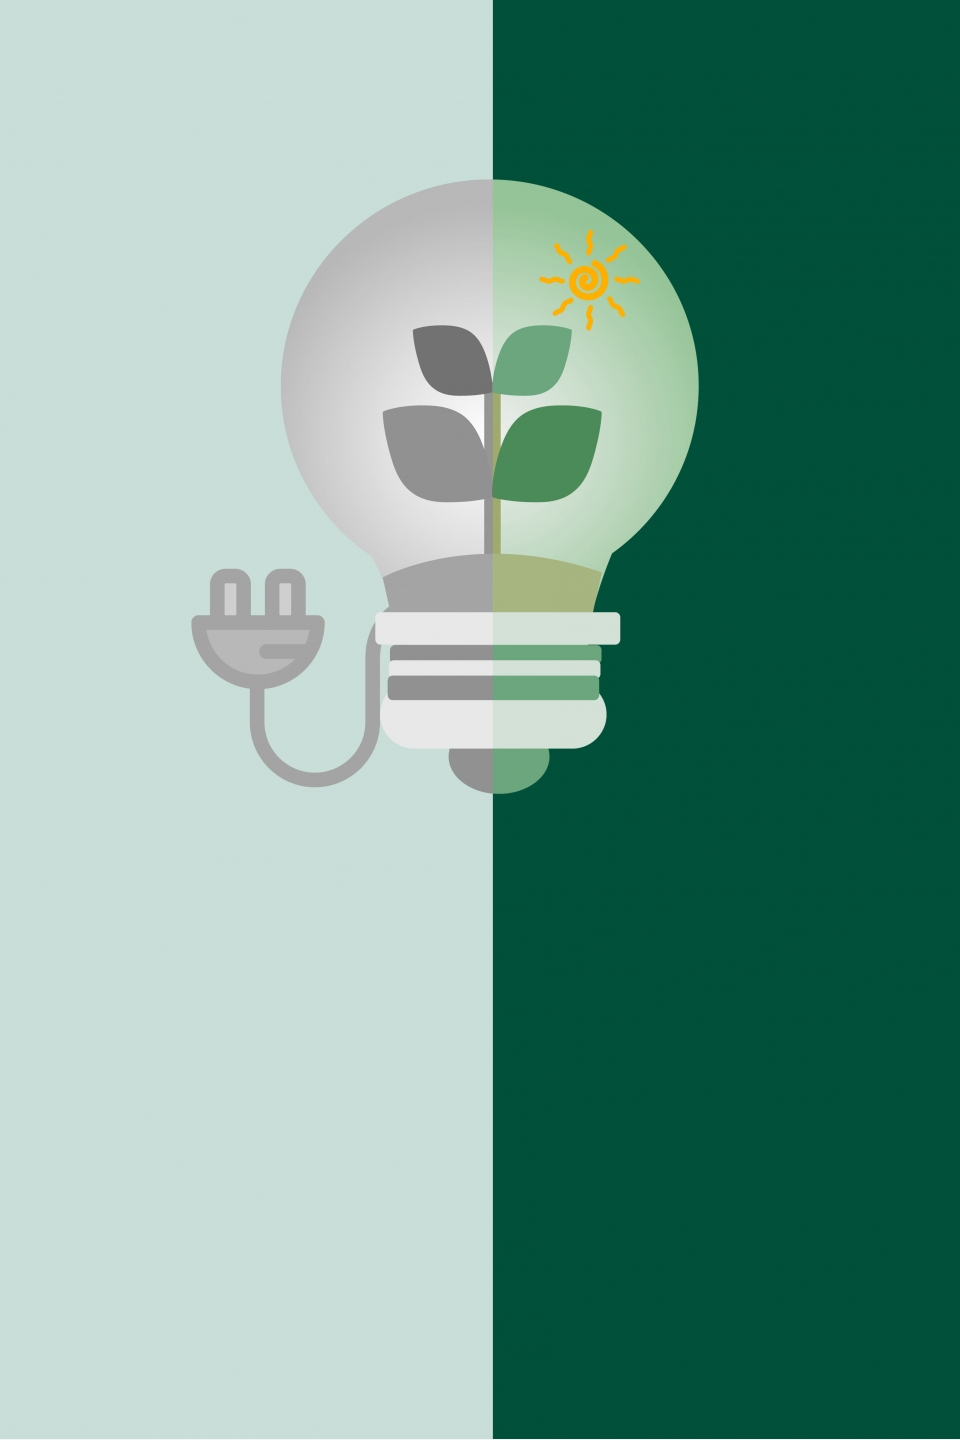 Electric Light Saving Electricity Poster Background Earth Hour 330 Environmental Protection Background Image For Free Download